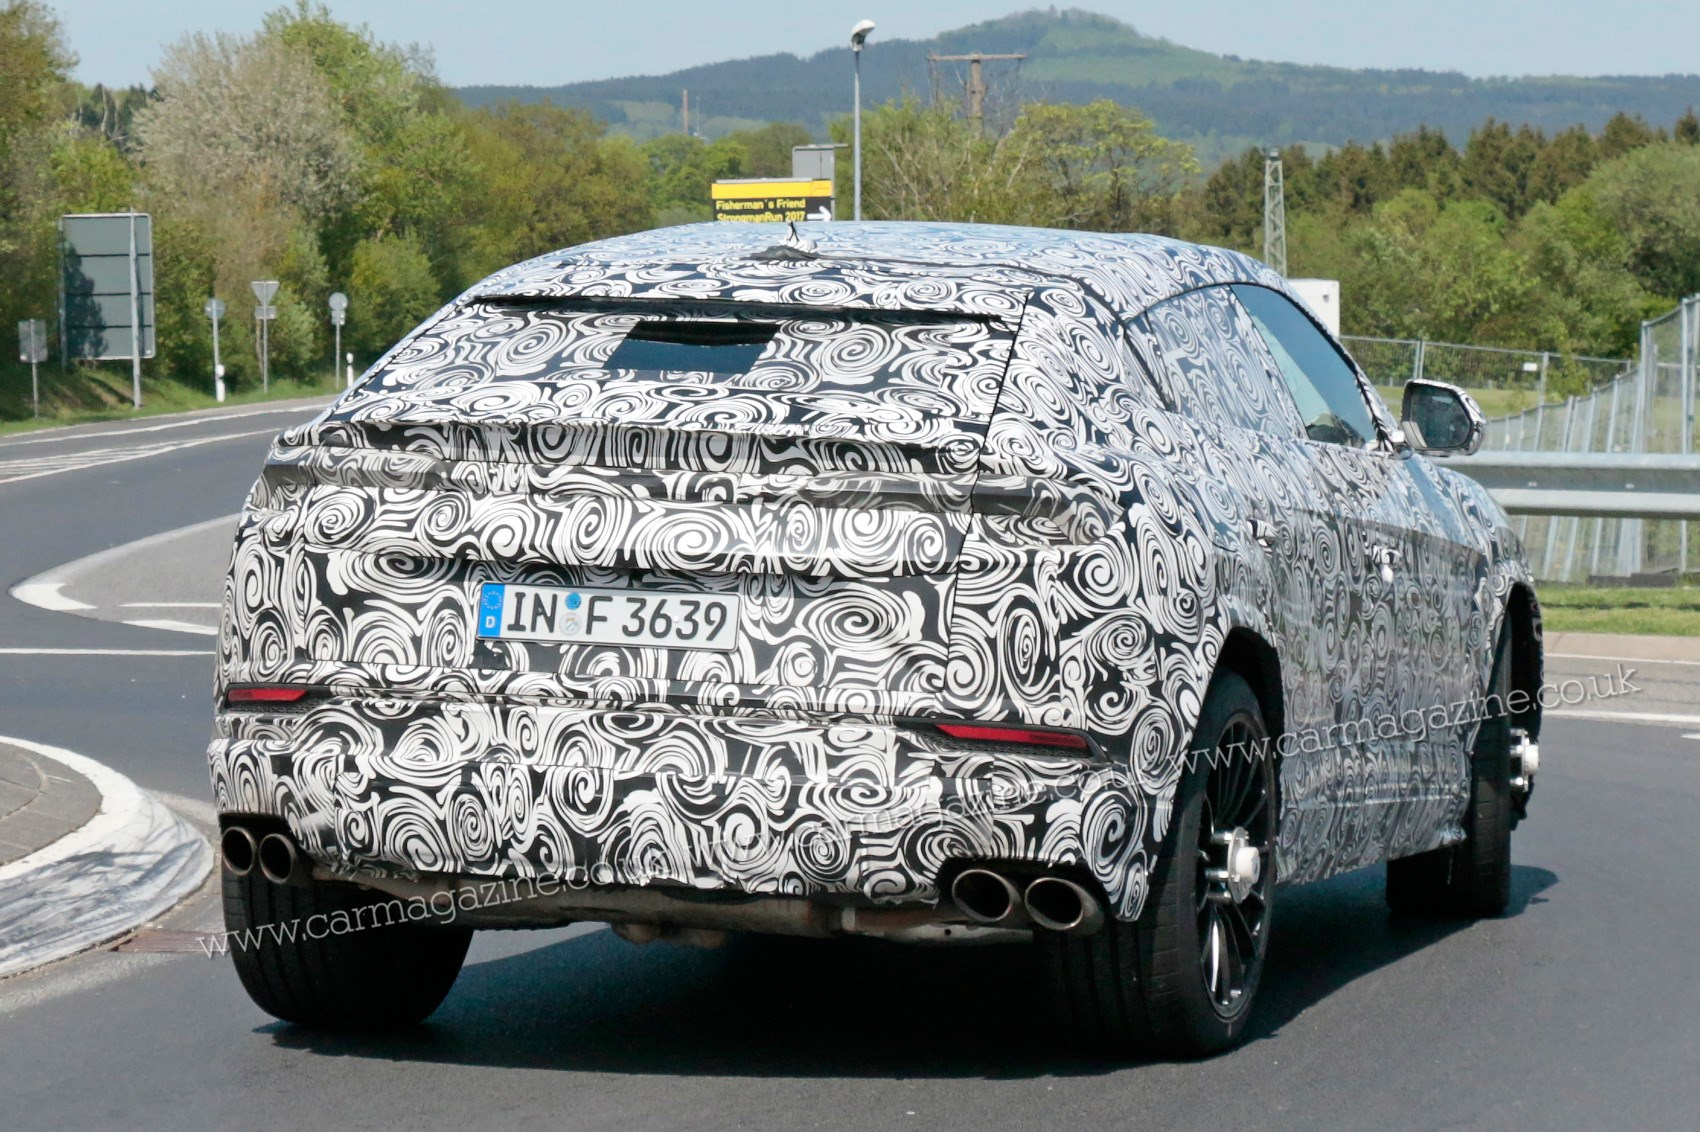 Suvs For Sale >> New Lamborghini Urus SUV spotted being thrashed around the 'Ring | CAR Magazine